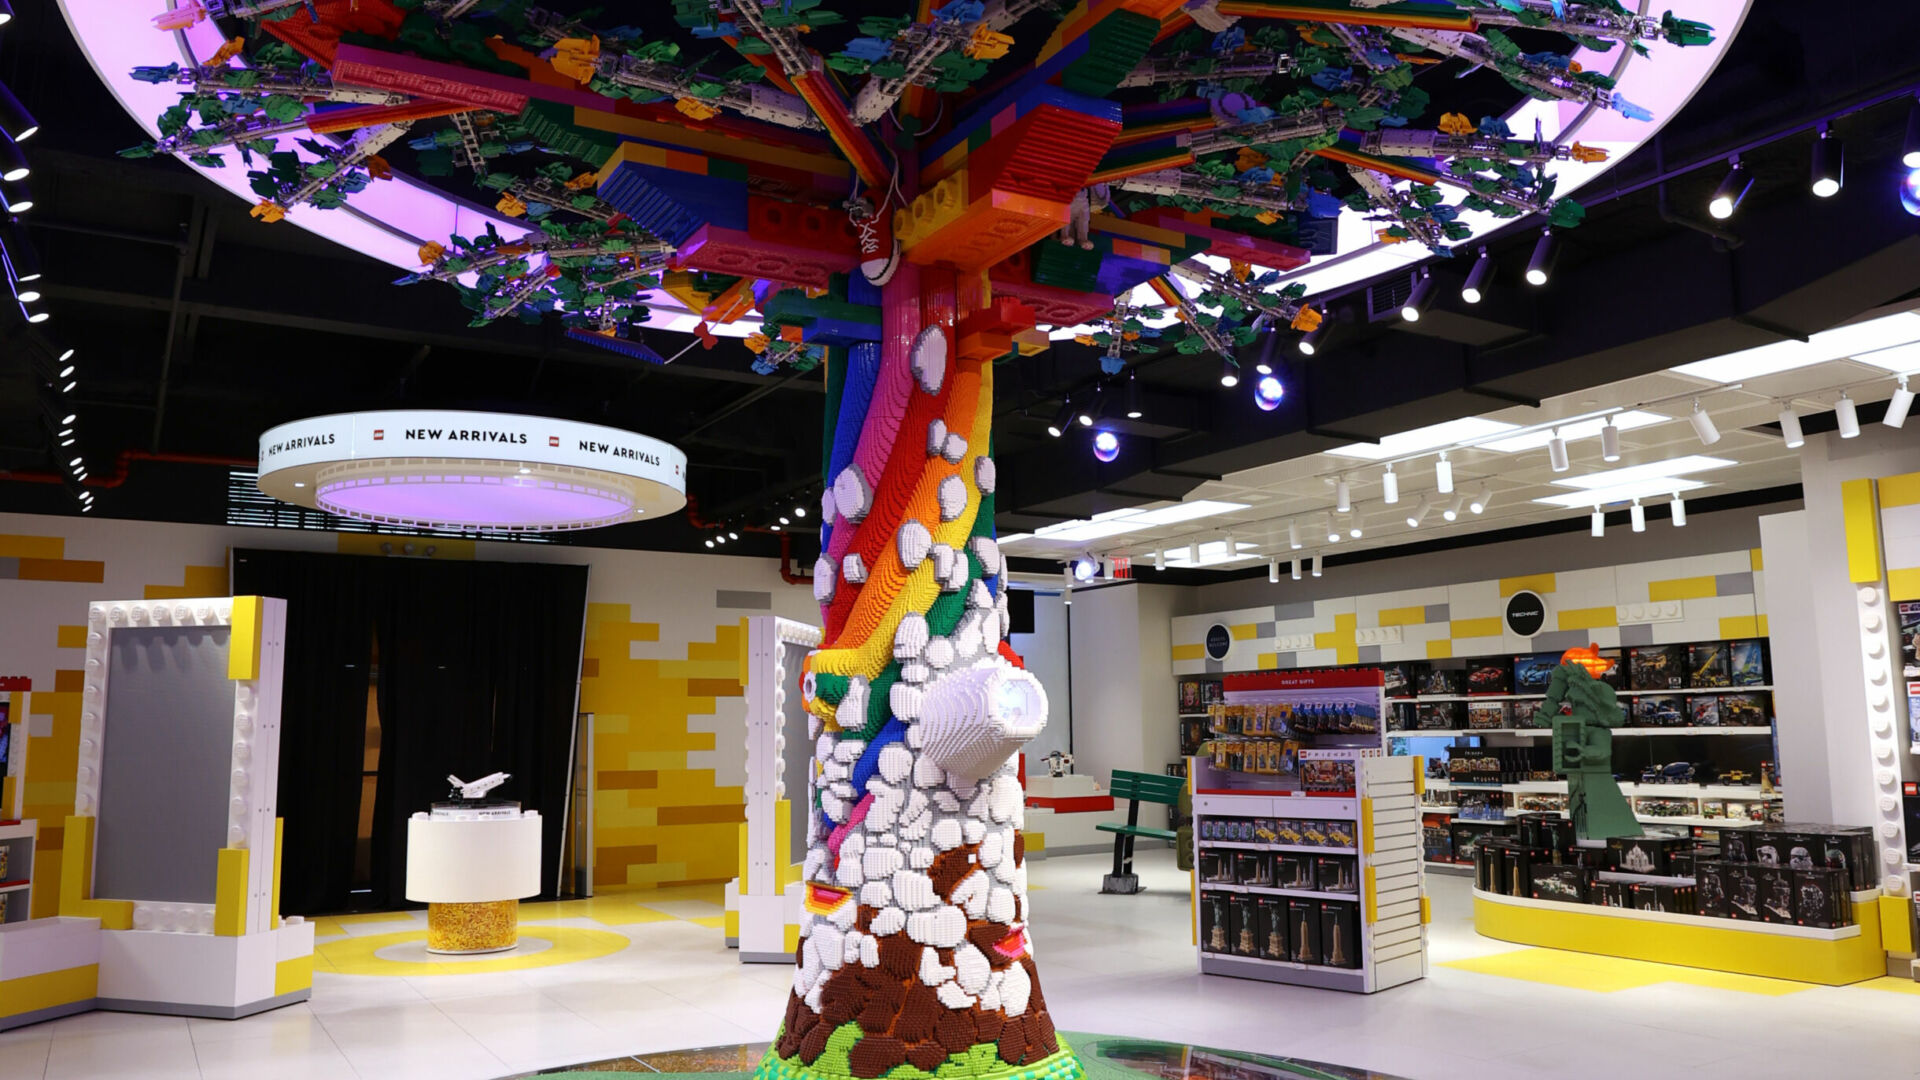 The Tree of Discovery, made of 880,000 bricks.(Photo by Cindy Ord/Getty Images)